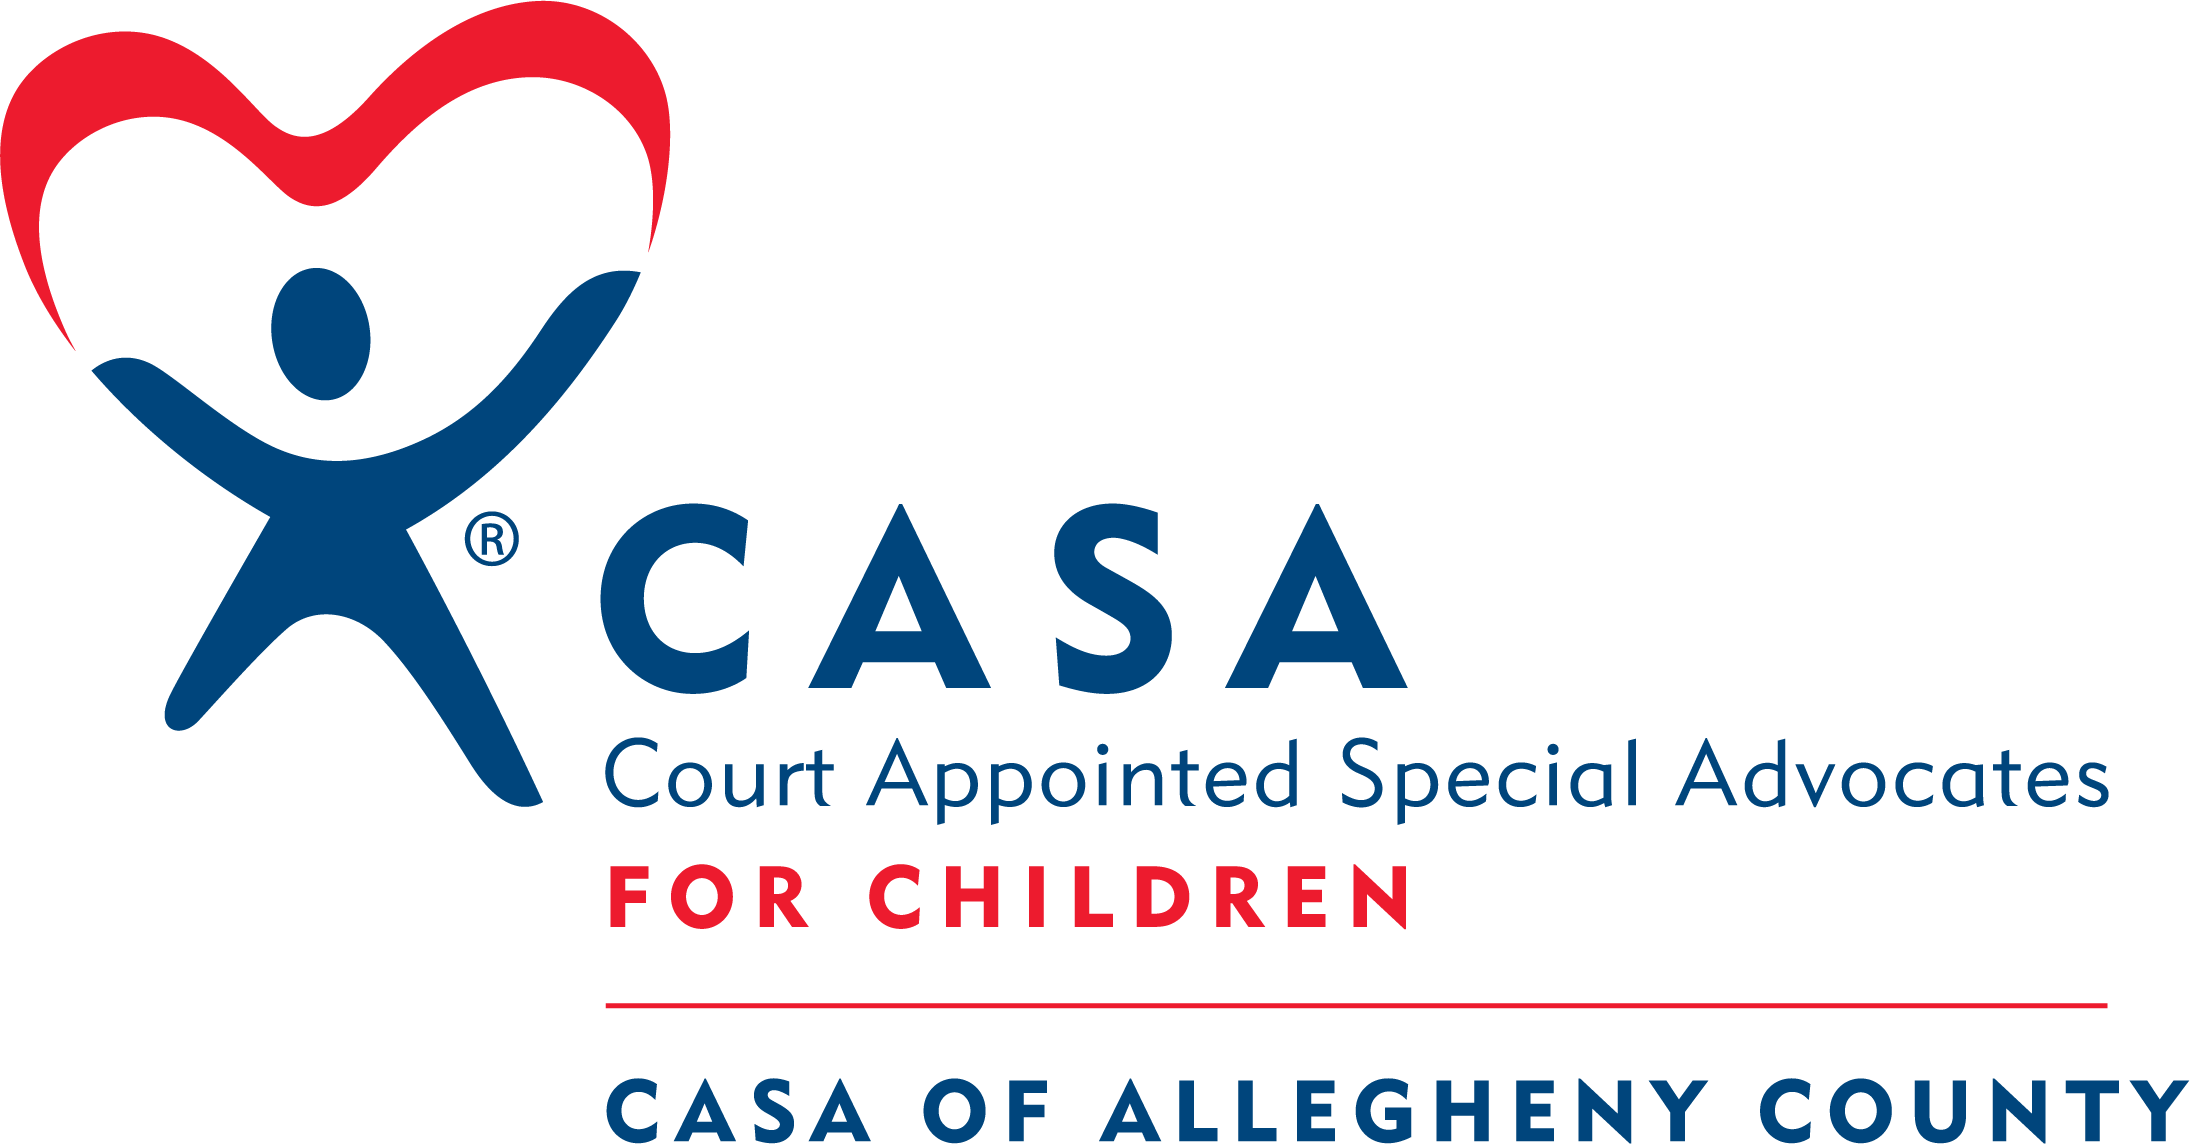 CASA of Allegheny County